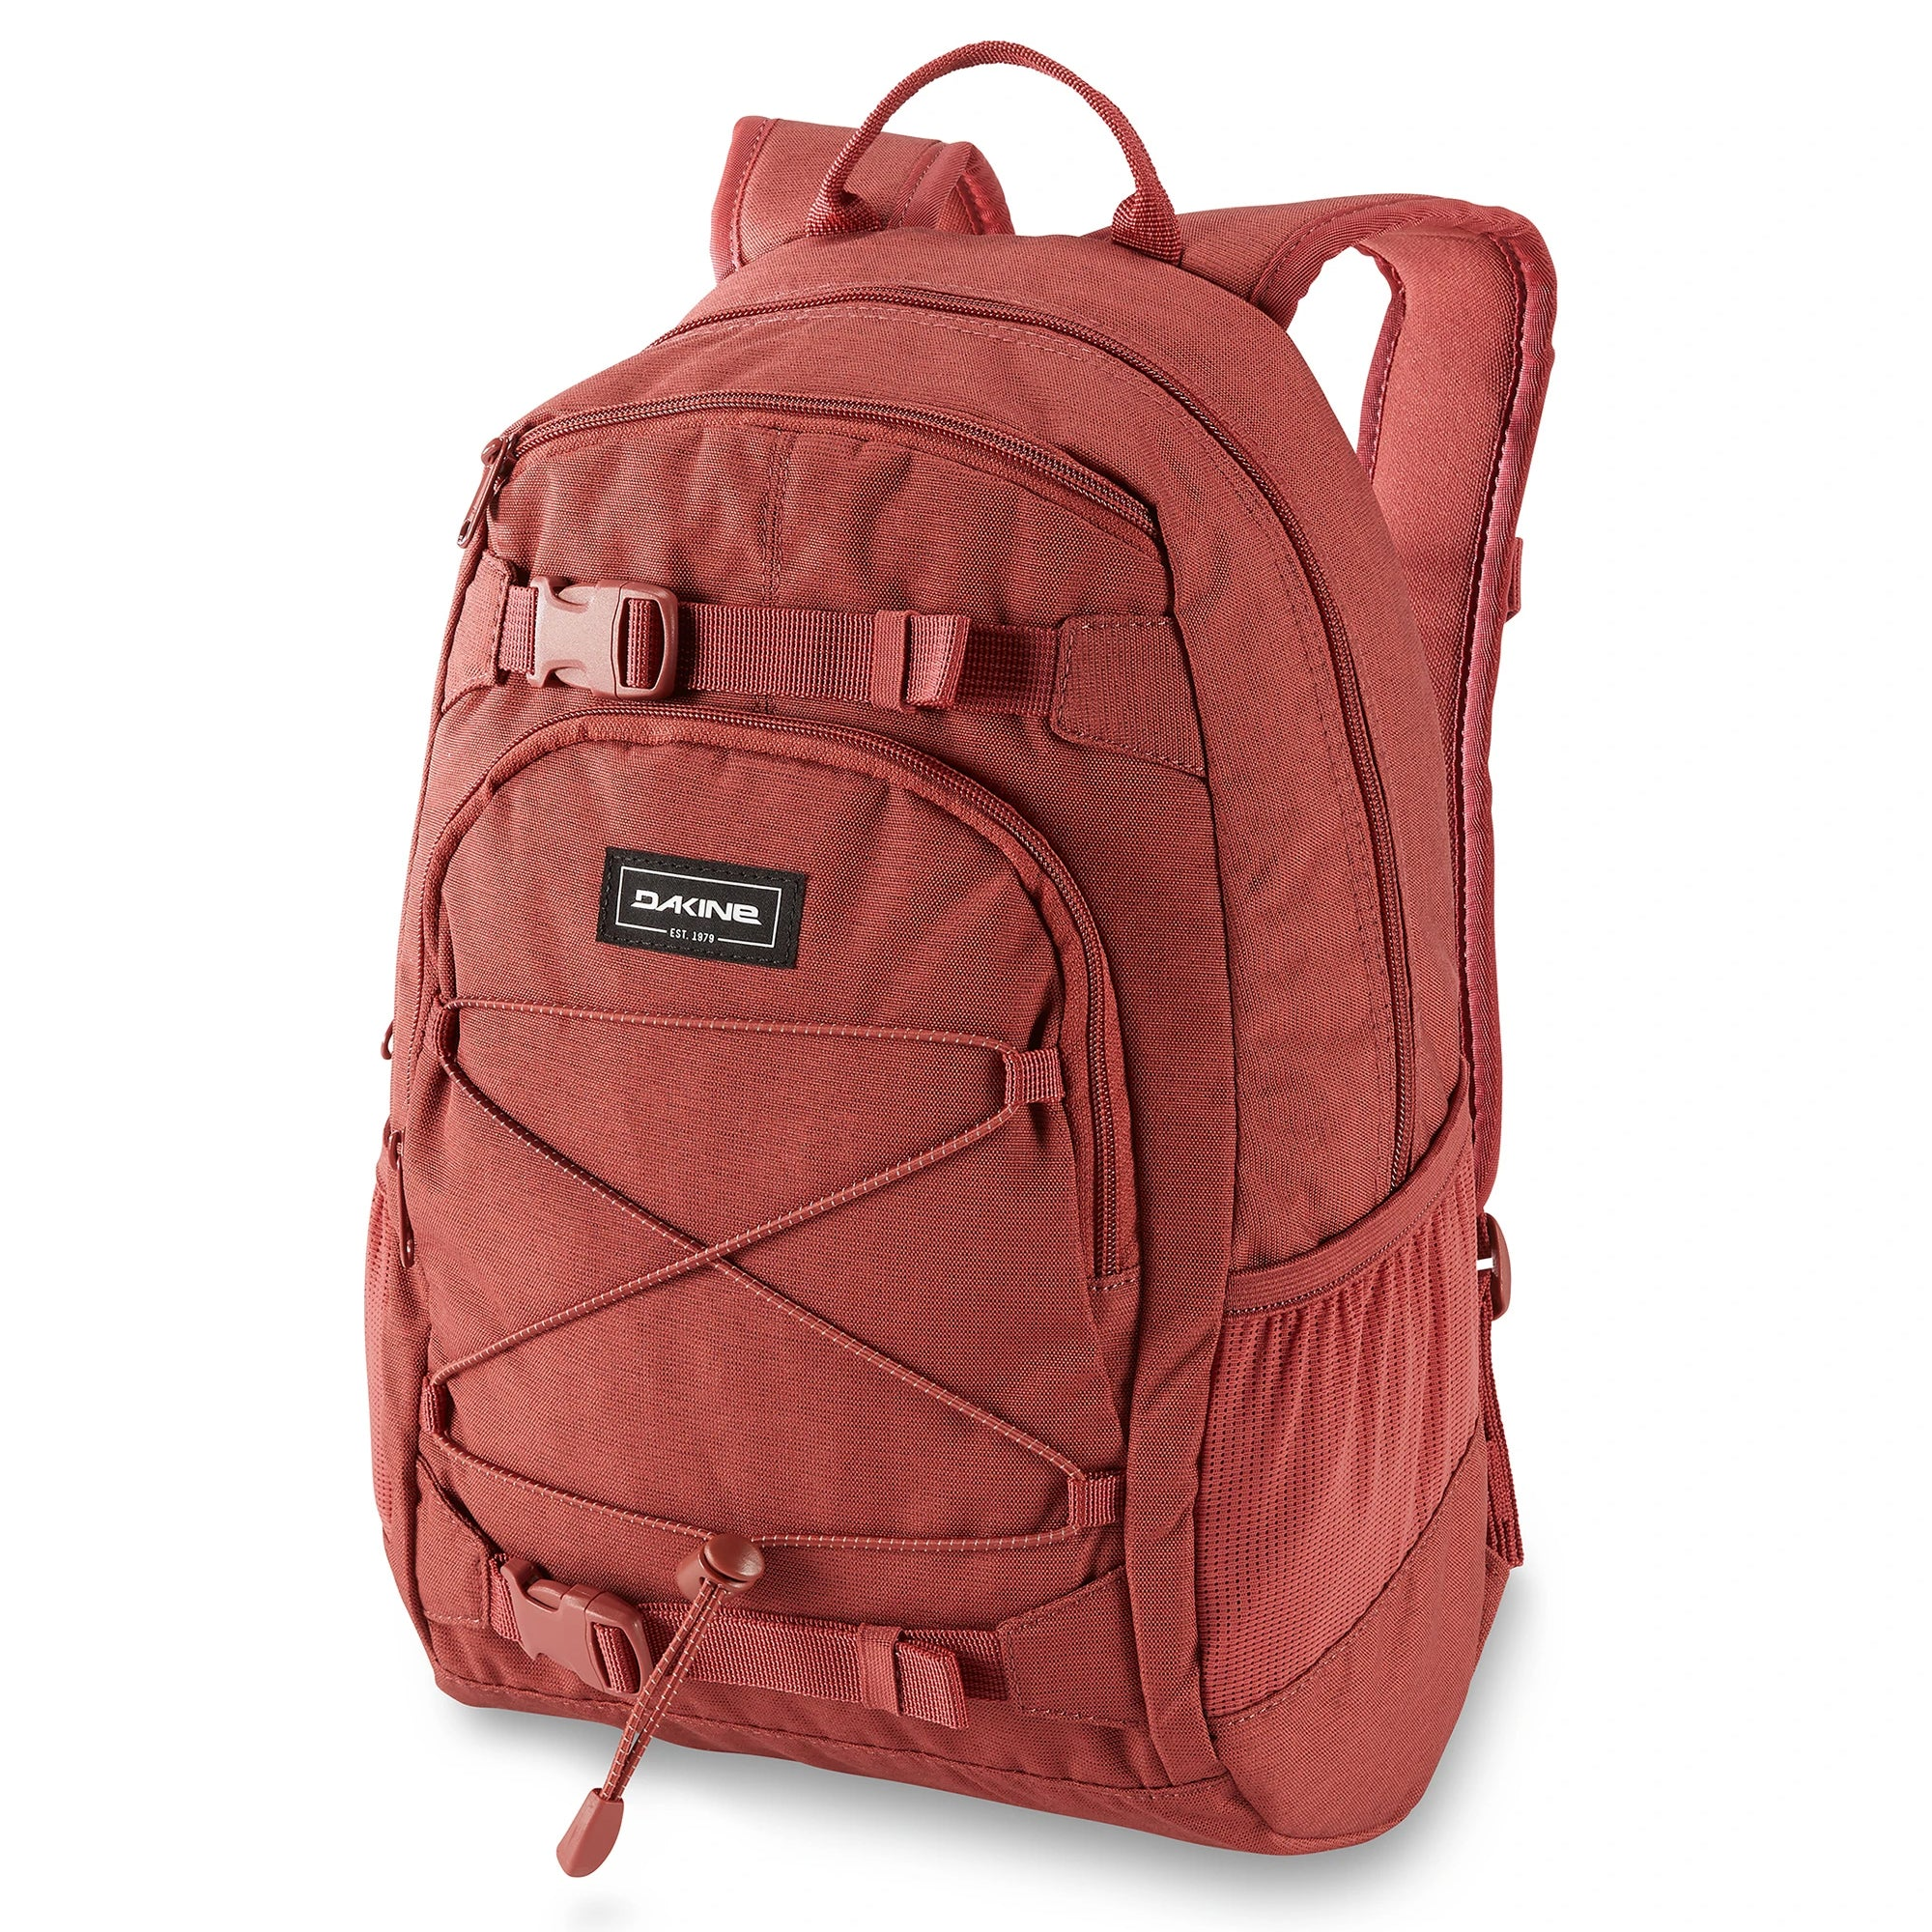 Dakine Grom 13L Backpack - Dark Rose